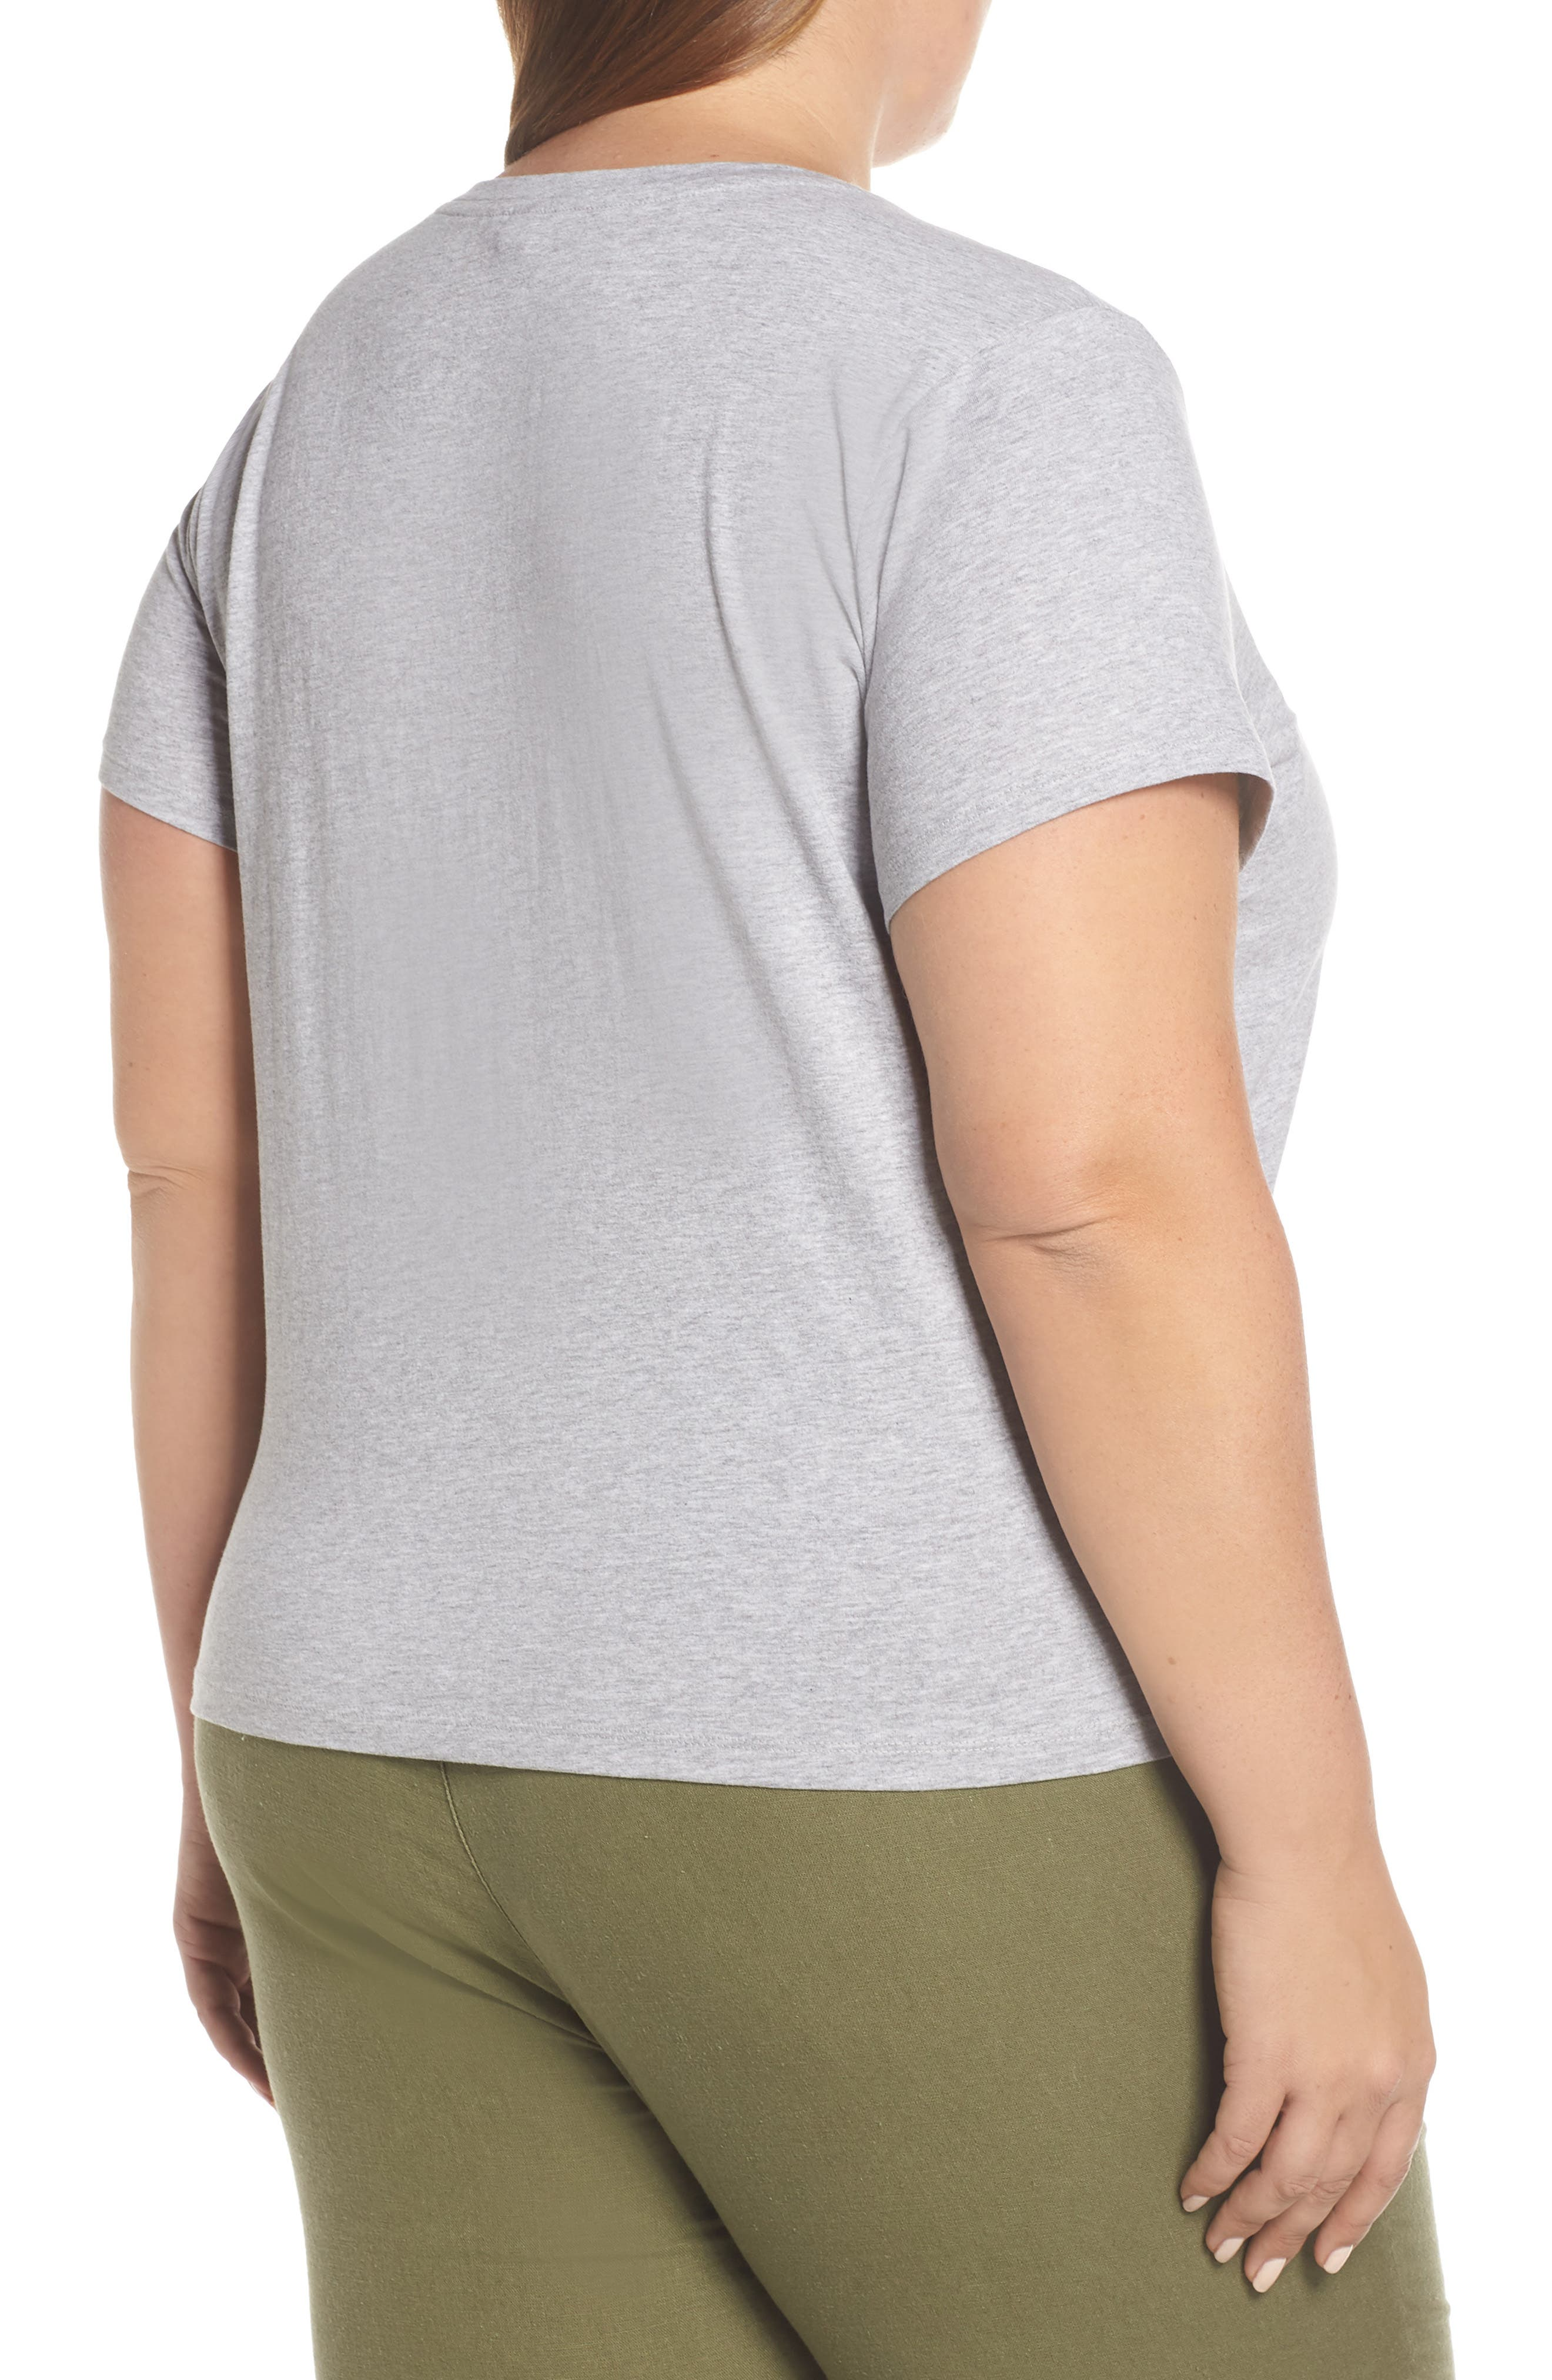 Pocket Crewneck Tee,                             Alternate thumbnail 2, color,                             GREY PEARL HEATHER